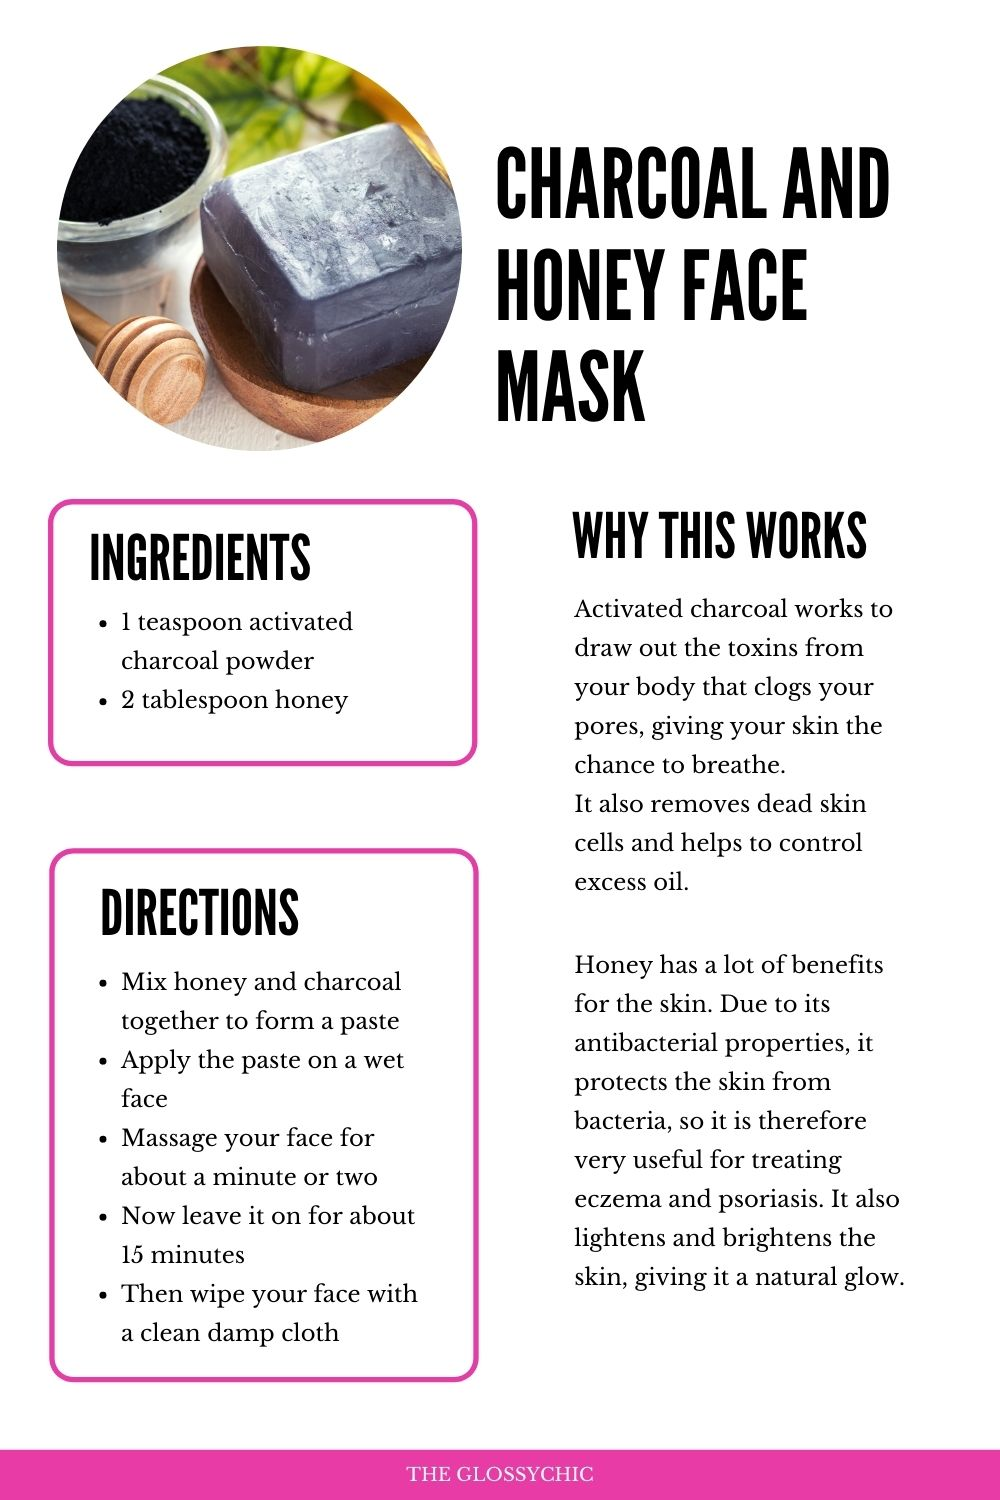 DIY Charcoal and honey face mask